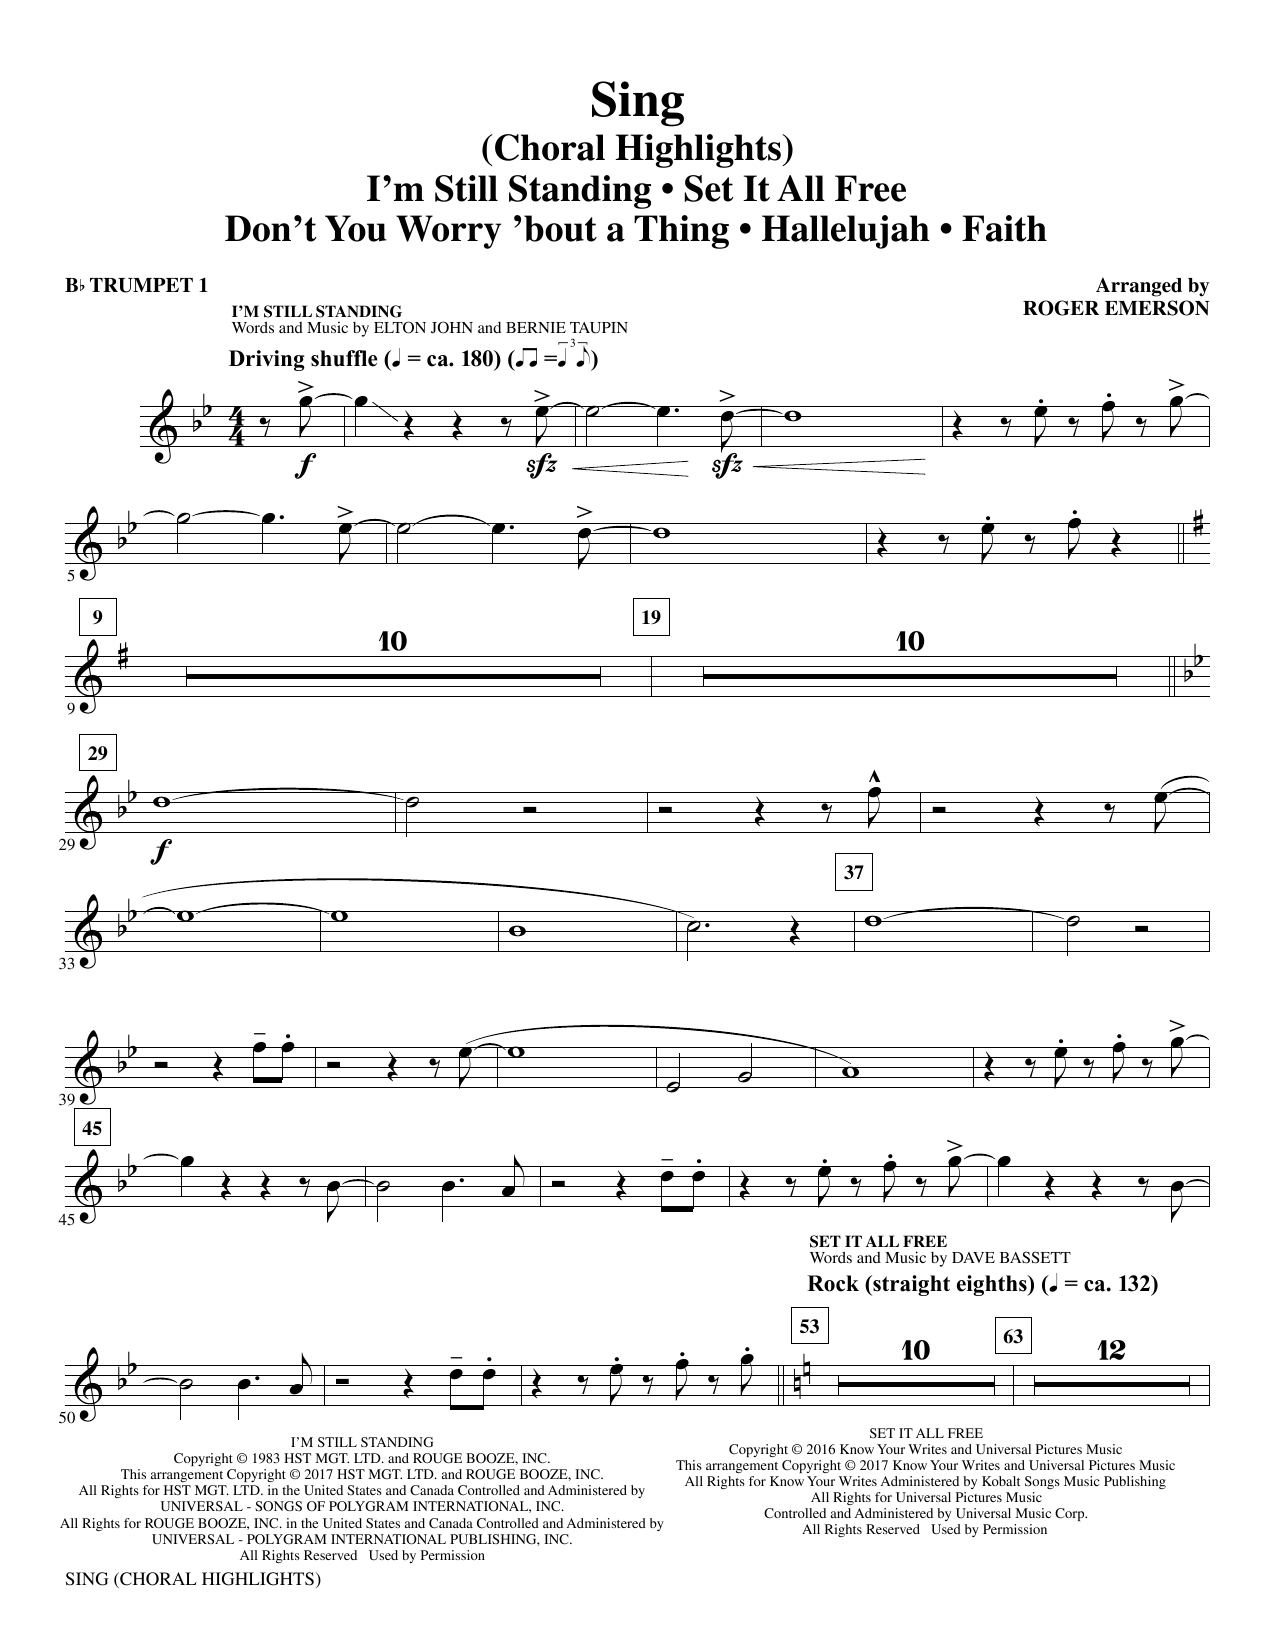 Sing (complete set of parts) sheet music for orchestra/band by Roger Emerson, Justin Timberlake & Matt Morris featuring Charlie Sexton and Leonard Cohen. Score Image Preview.